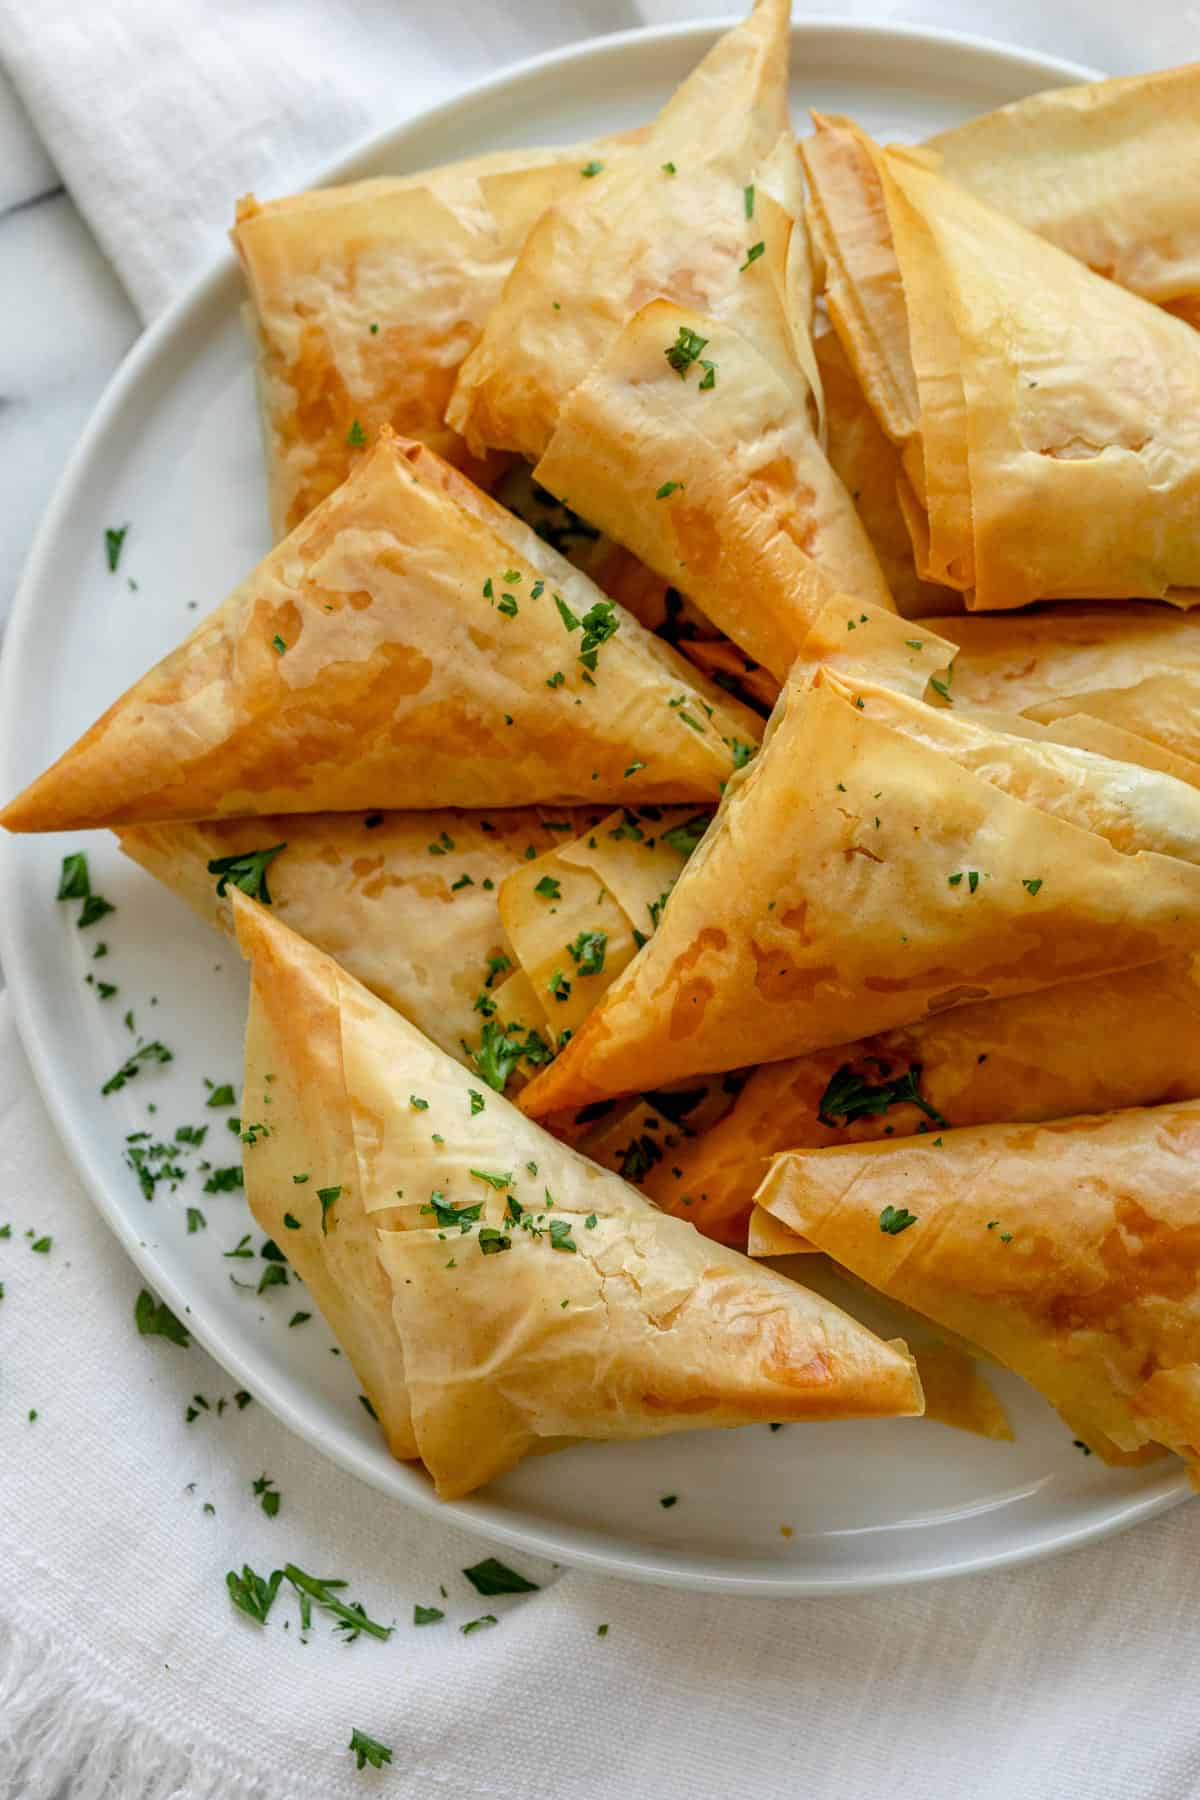 Spanakopita triangles after baking on a plate